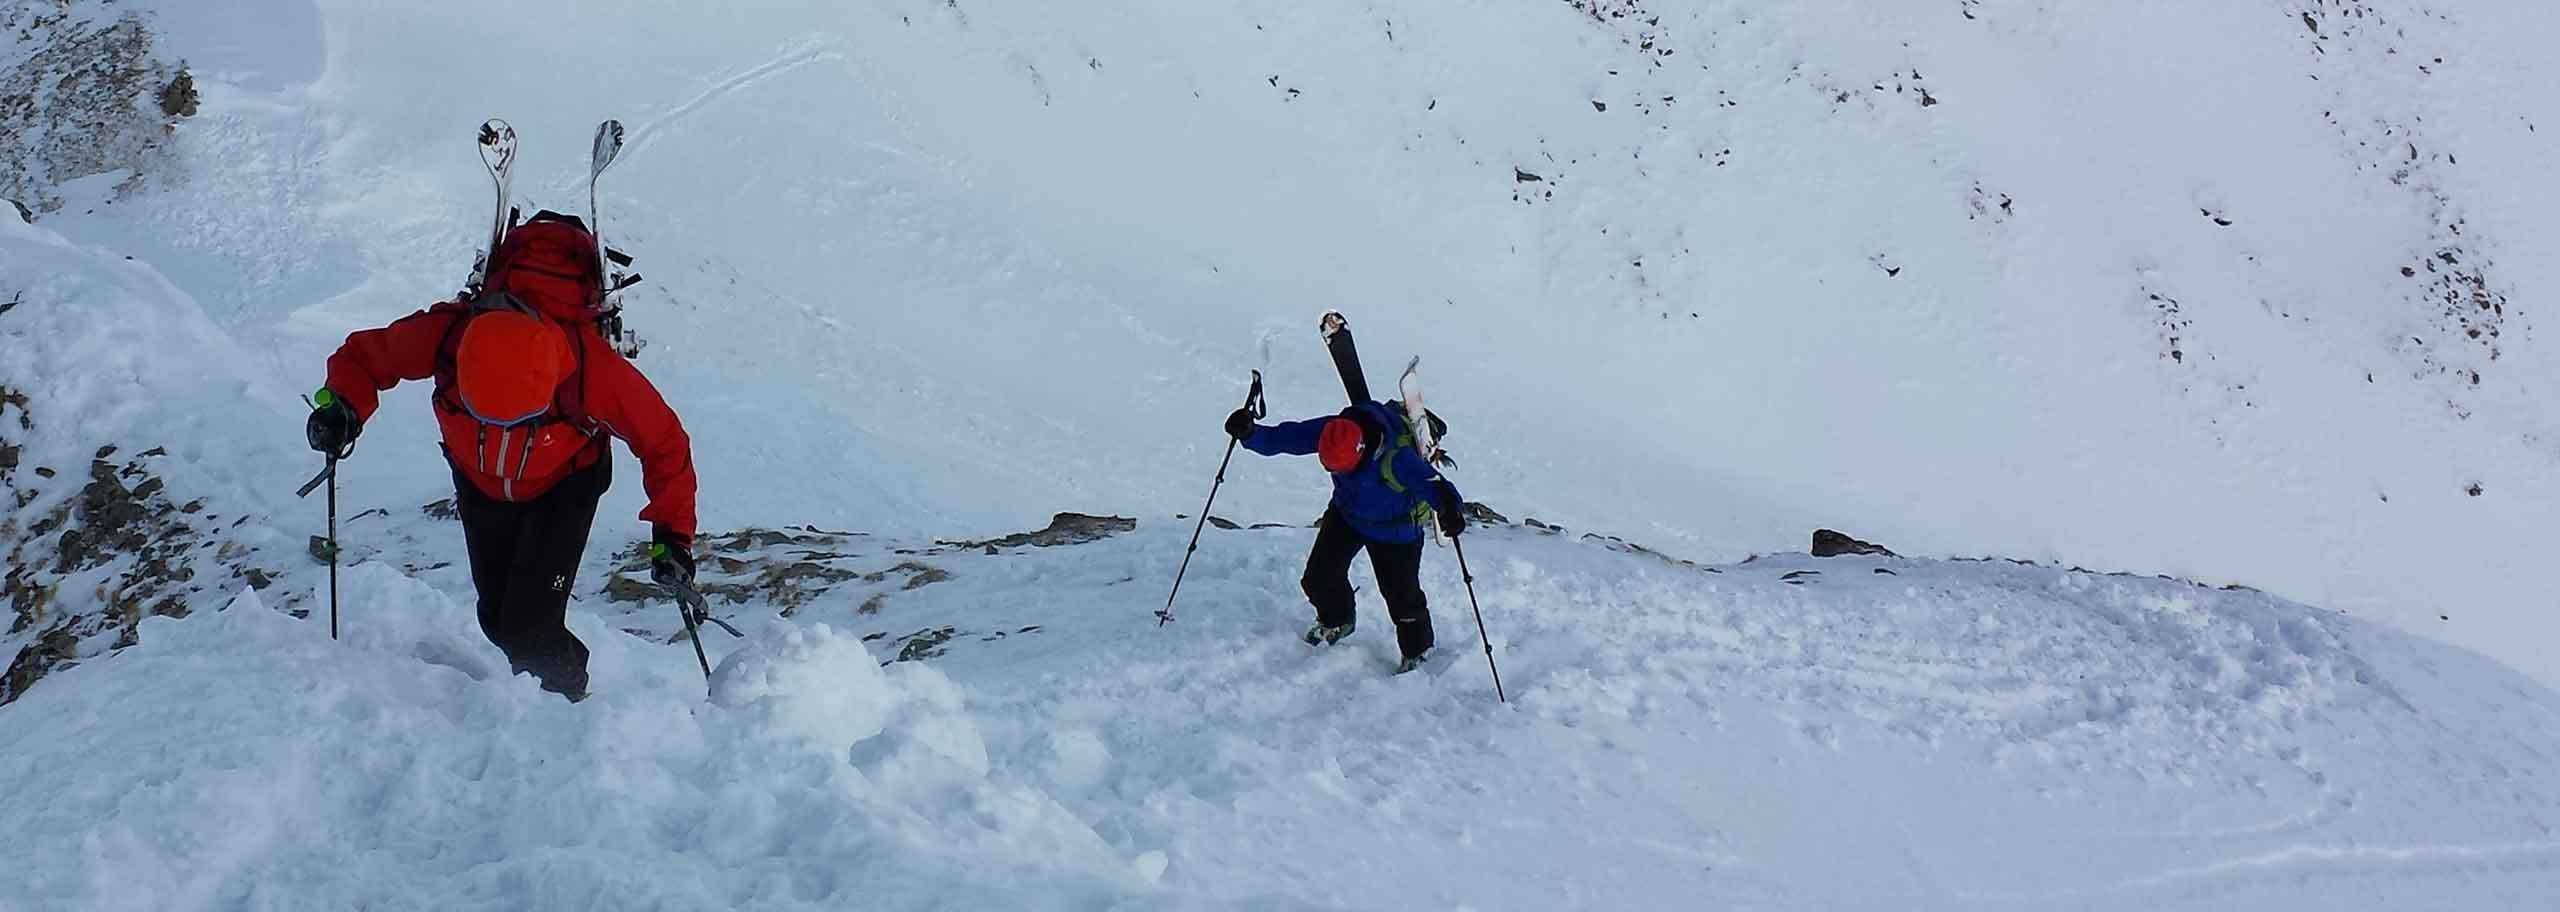 Ski Mountaineering with Mountain Guide in Madesimo